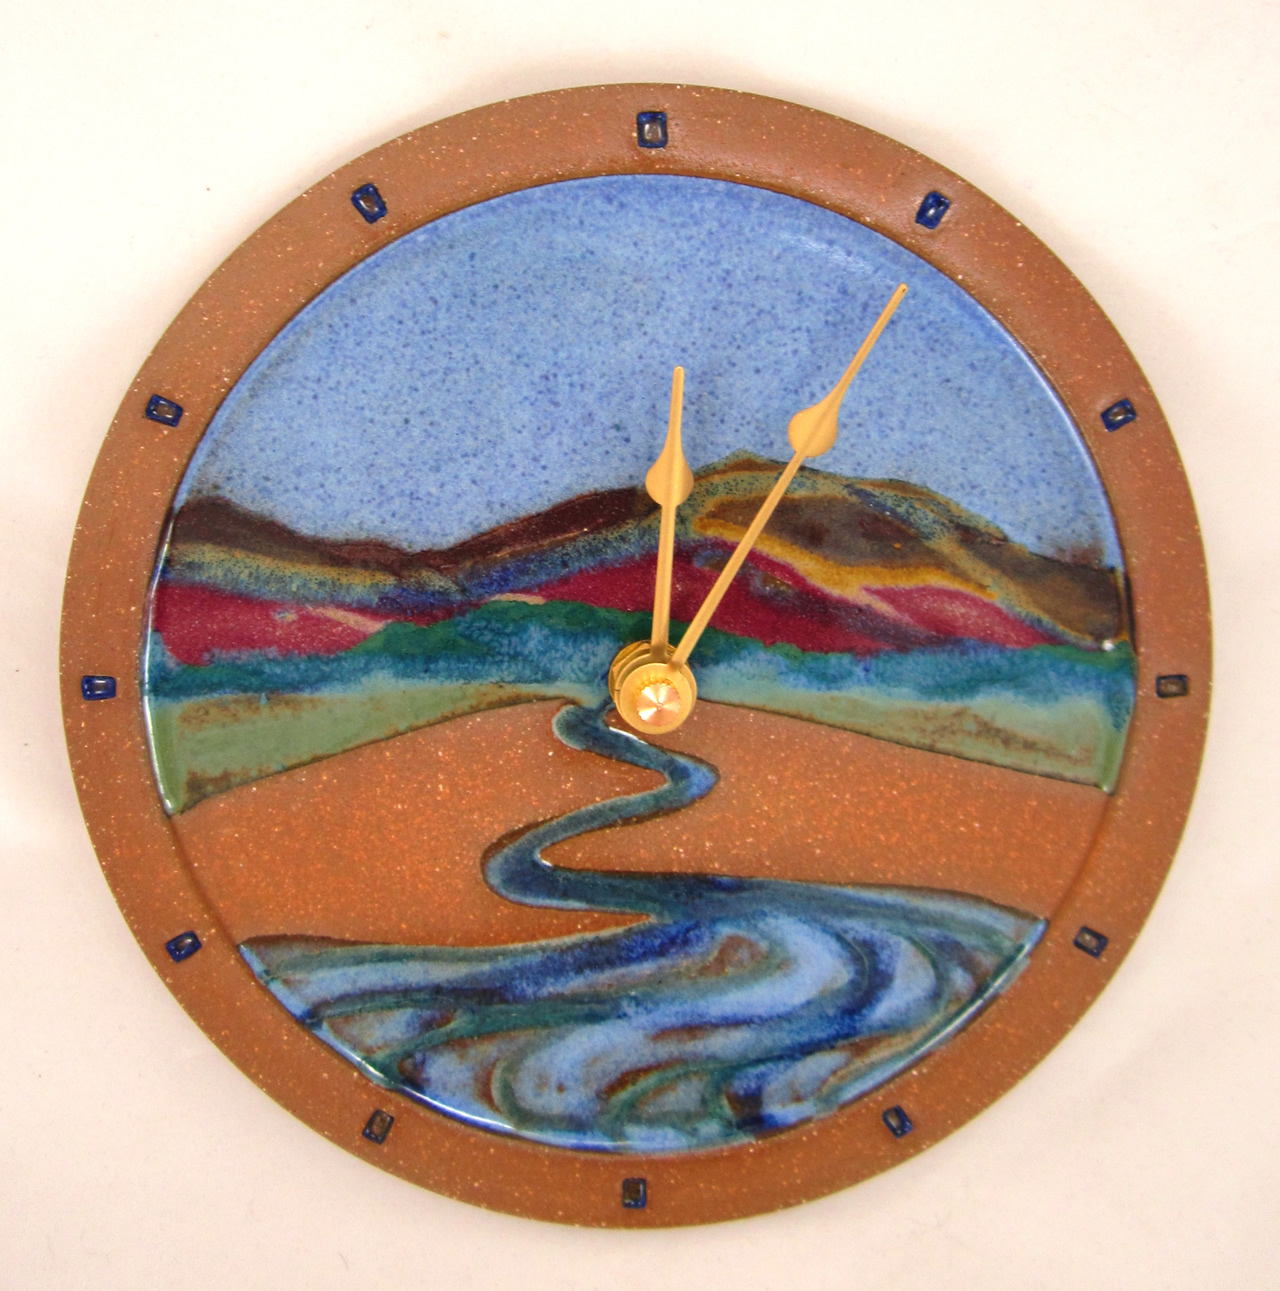 Sarah russell pottery clocks water clock opal with autumn mountains and stream small 62548 large 97572 amipublicfo Choice Image